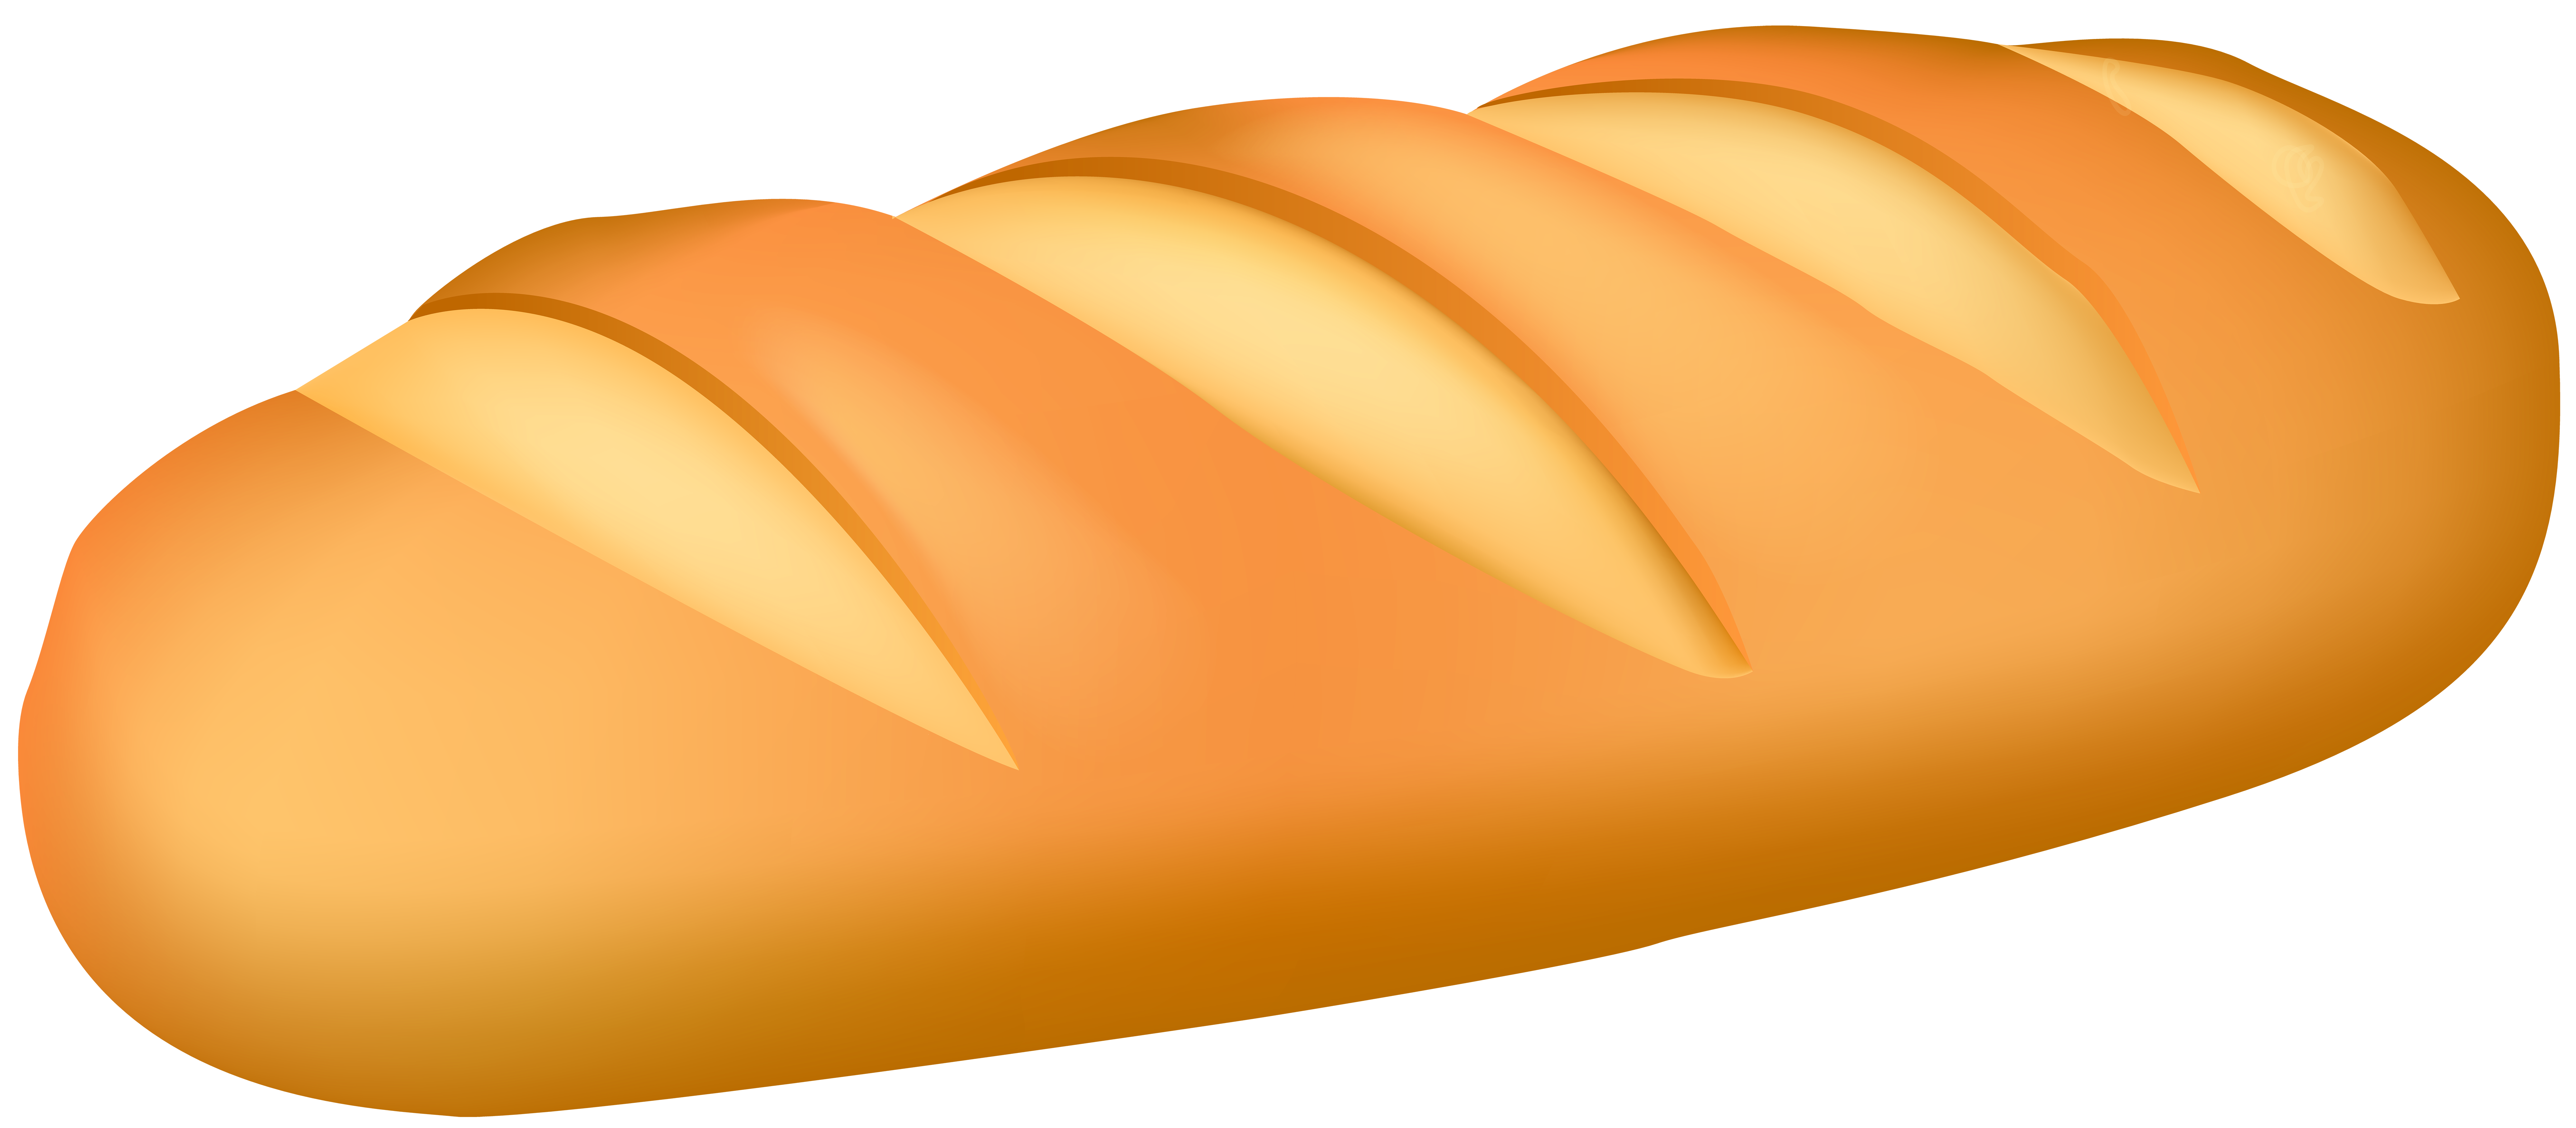 A loof of bread clipart png royalty free download Loaf Bread PNG Clip Art - Best WEB Clipart png royalty free download